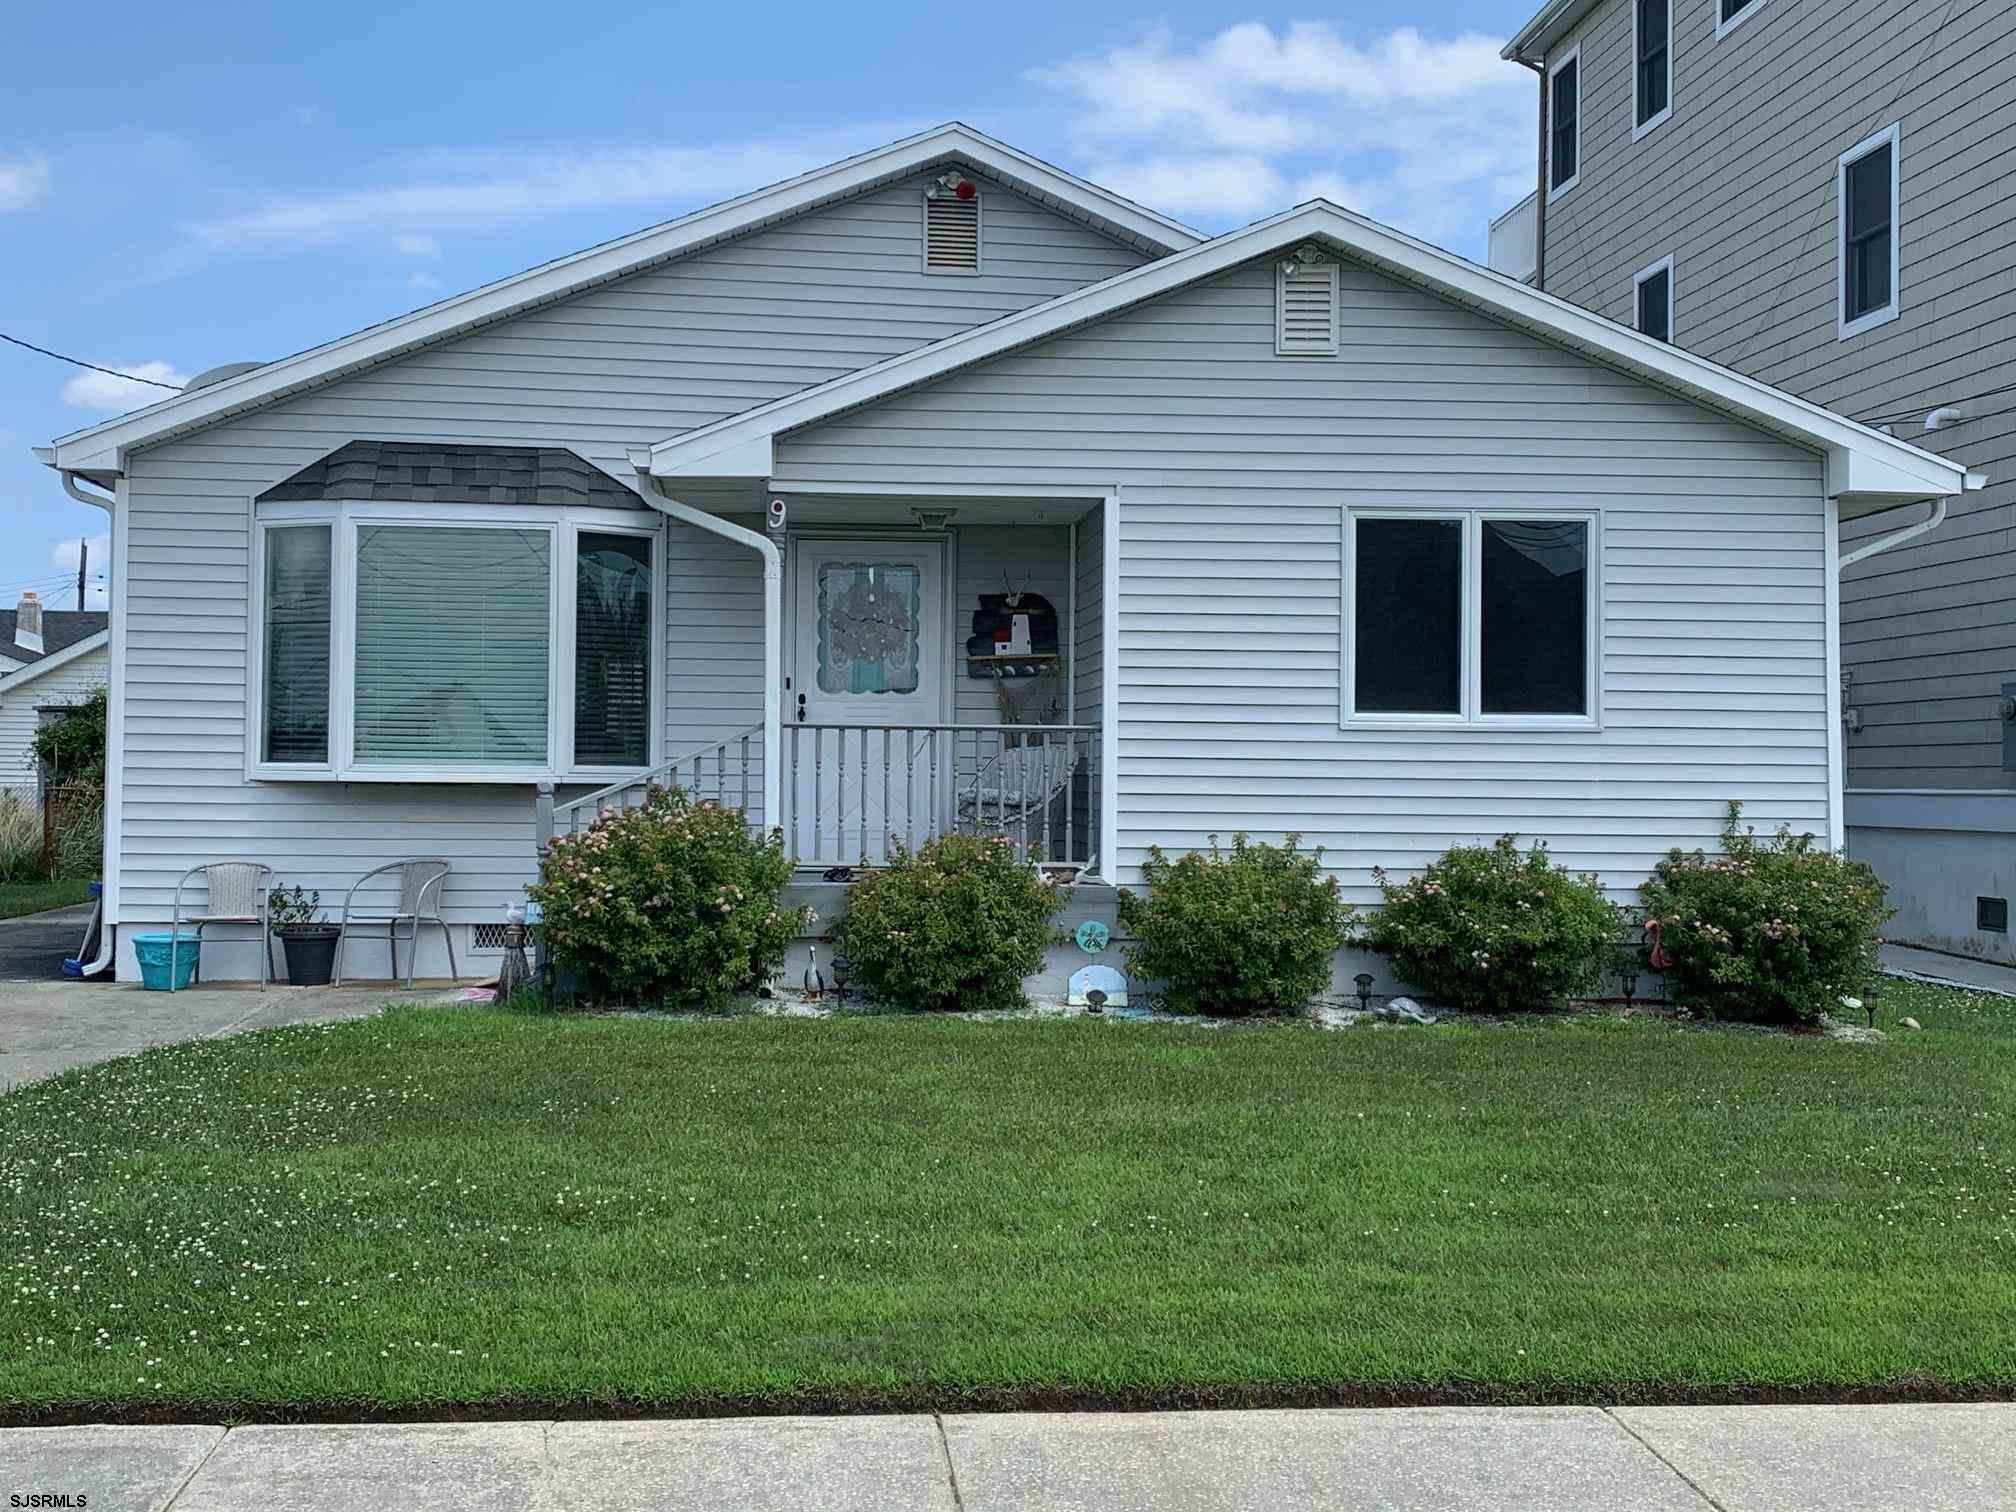 Don't miss this one ! Three bedroom one bath rancher completely redone a few years ago. Turn key hom